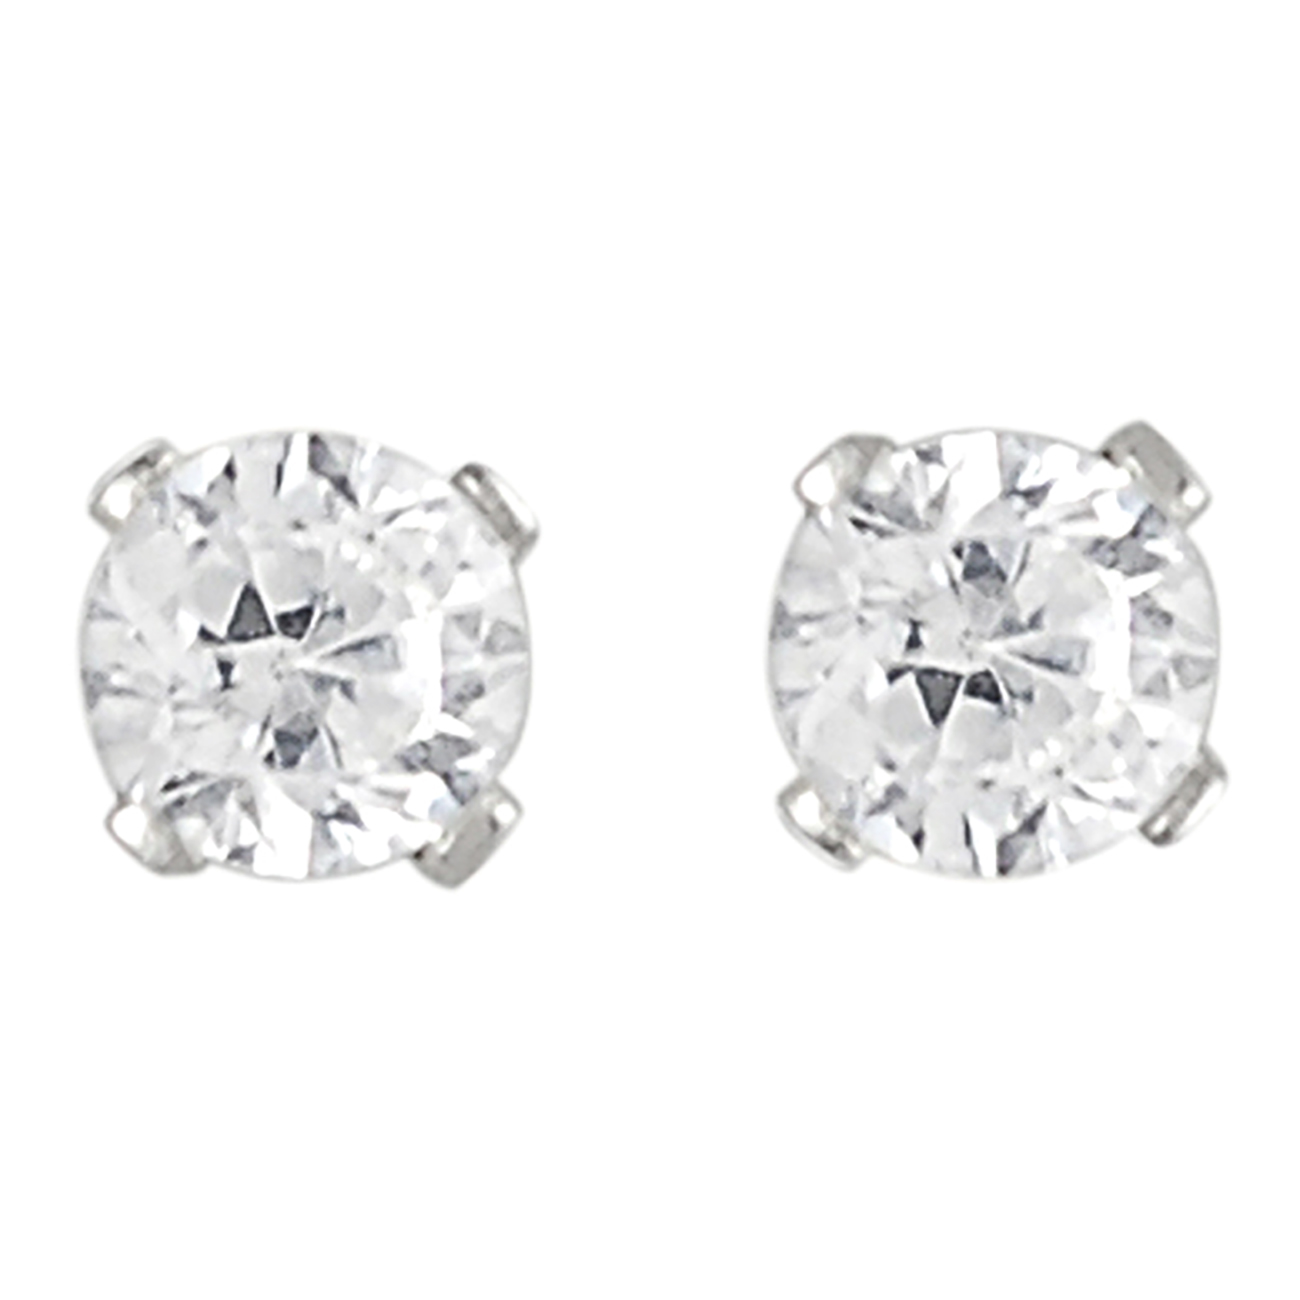 SilverBin Sterling Silver Round-cut Cubic Zirconia Stud Earrings at Sears.com